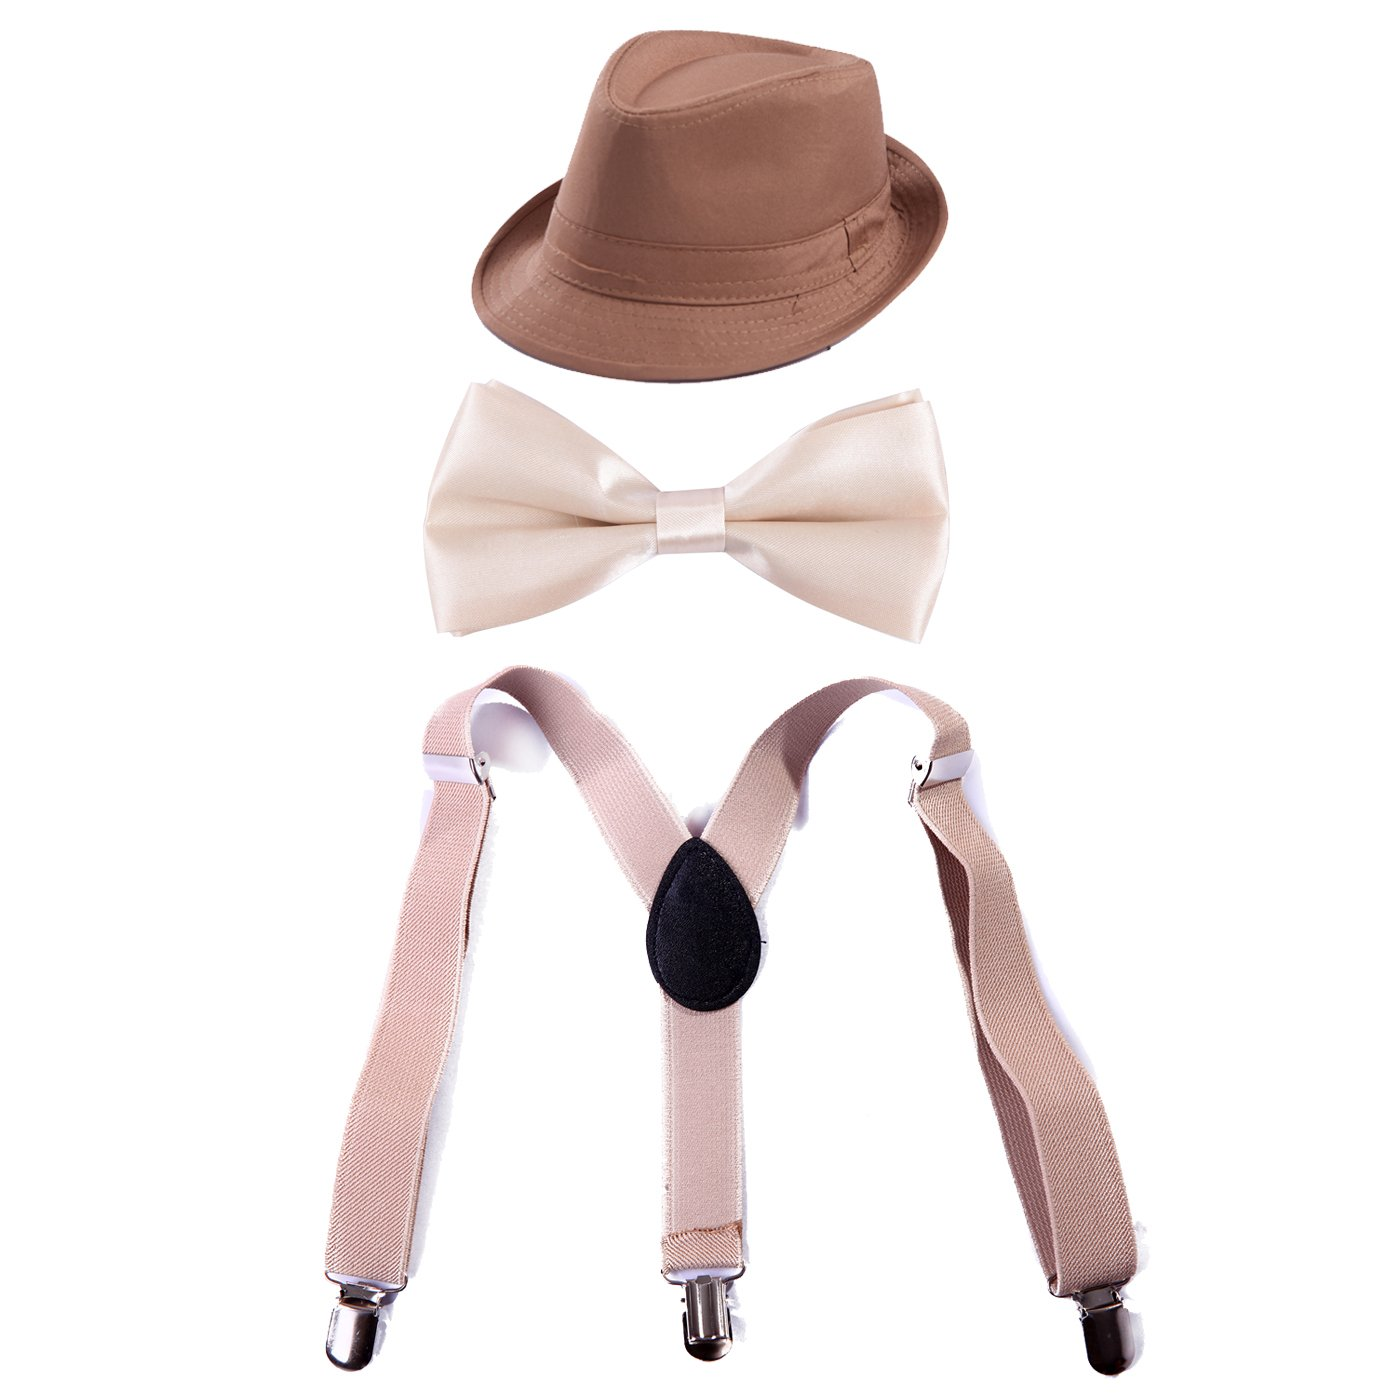 HDE Kid's Funky Design Solid Color Adjustable Elastic Clip Suspenders with Pre-tied Microfiber Neck Strap Bow tie and Short Brim Trilby Fedora Hat (Khaki)